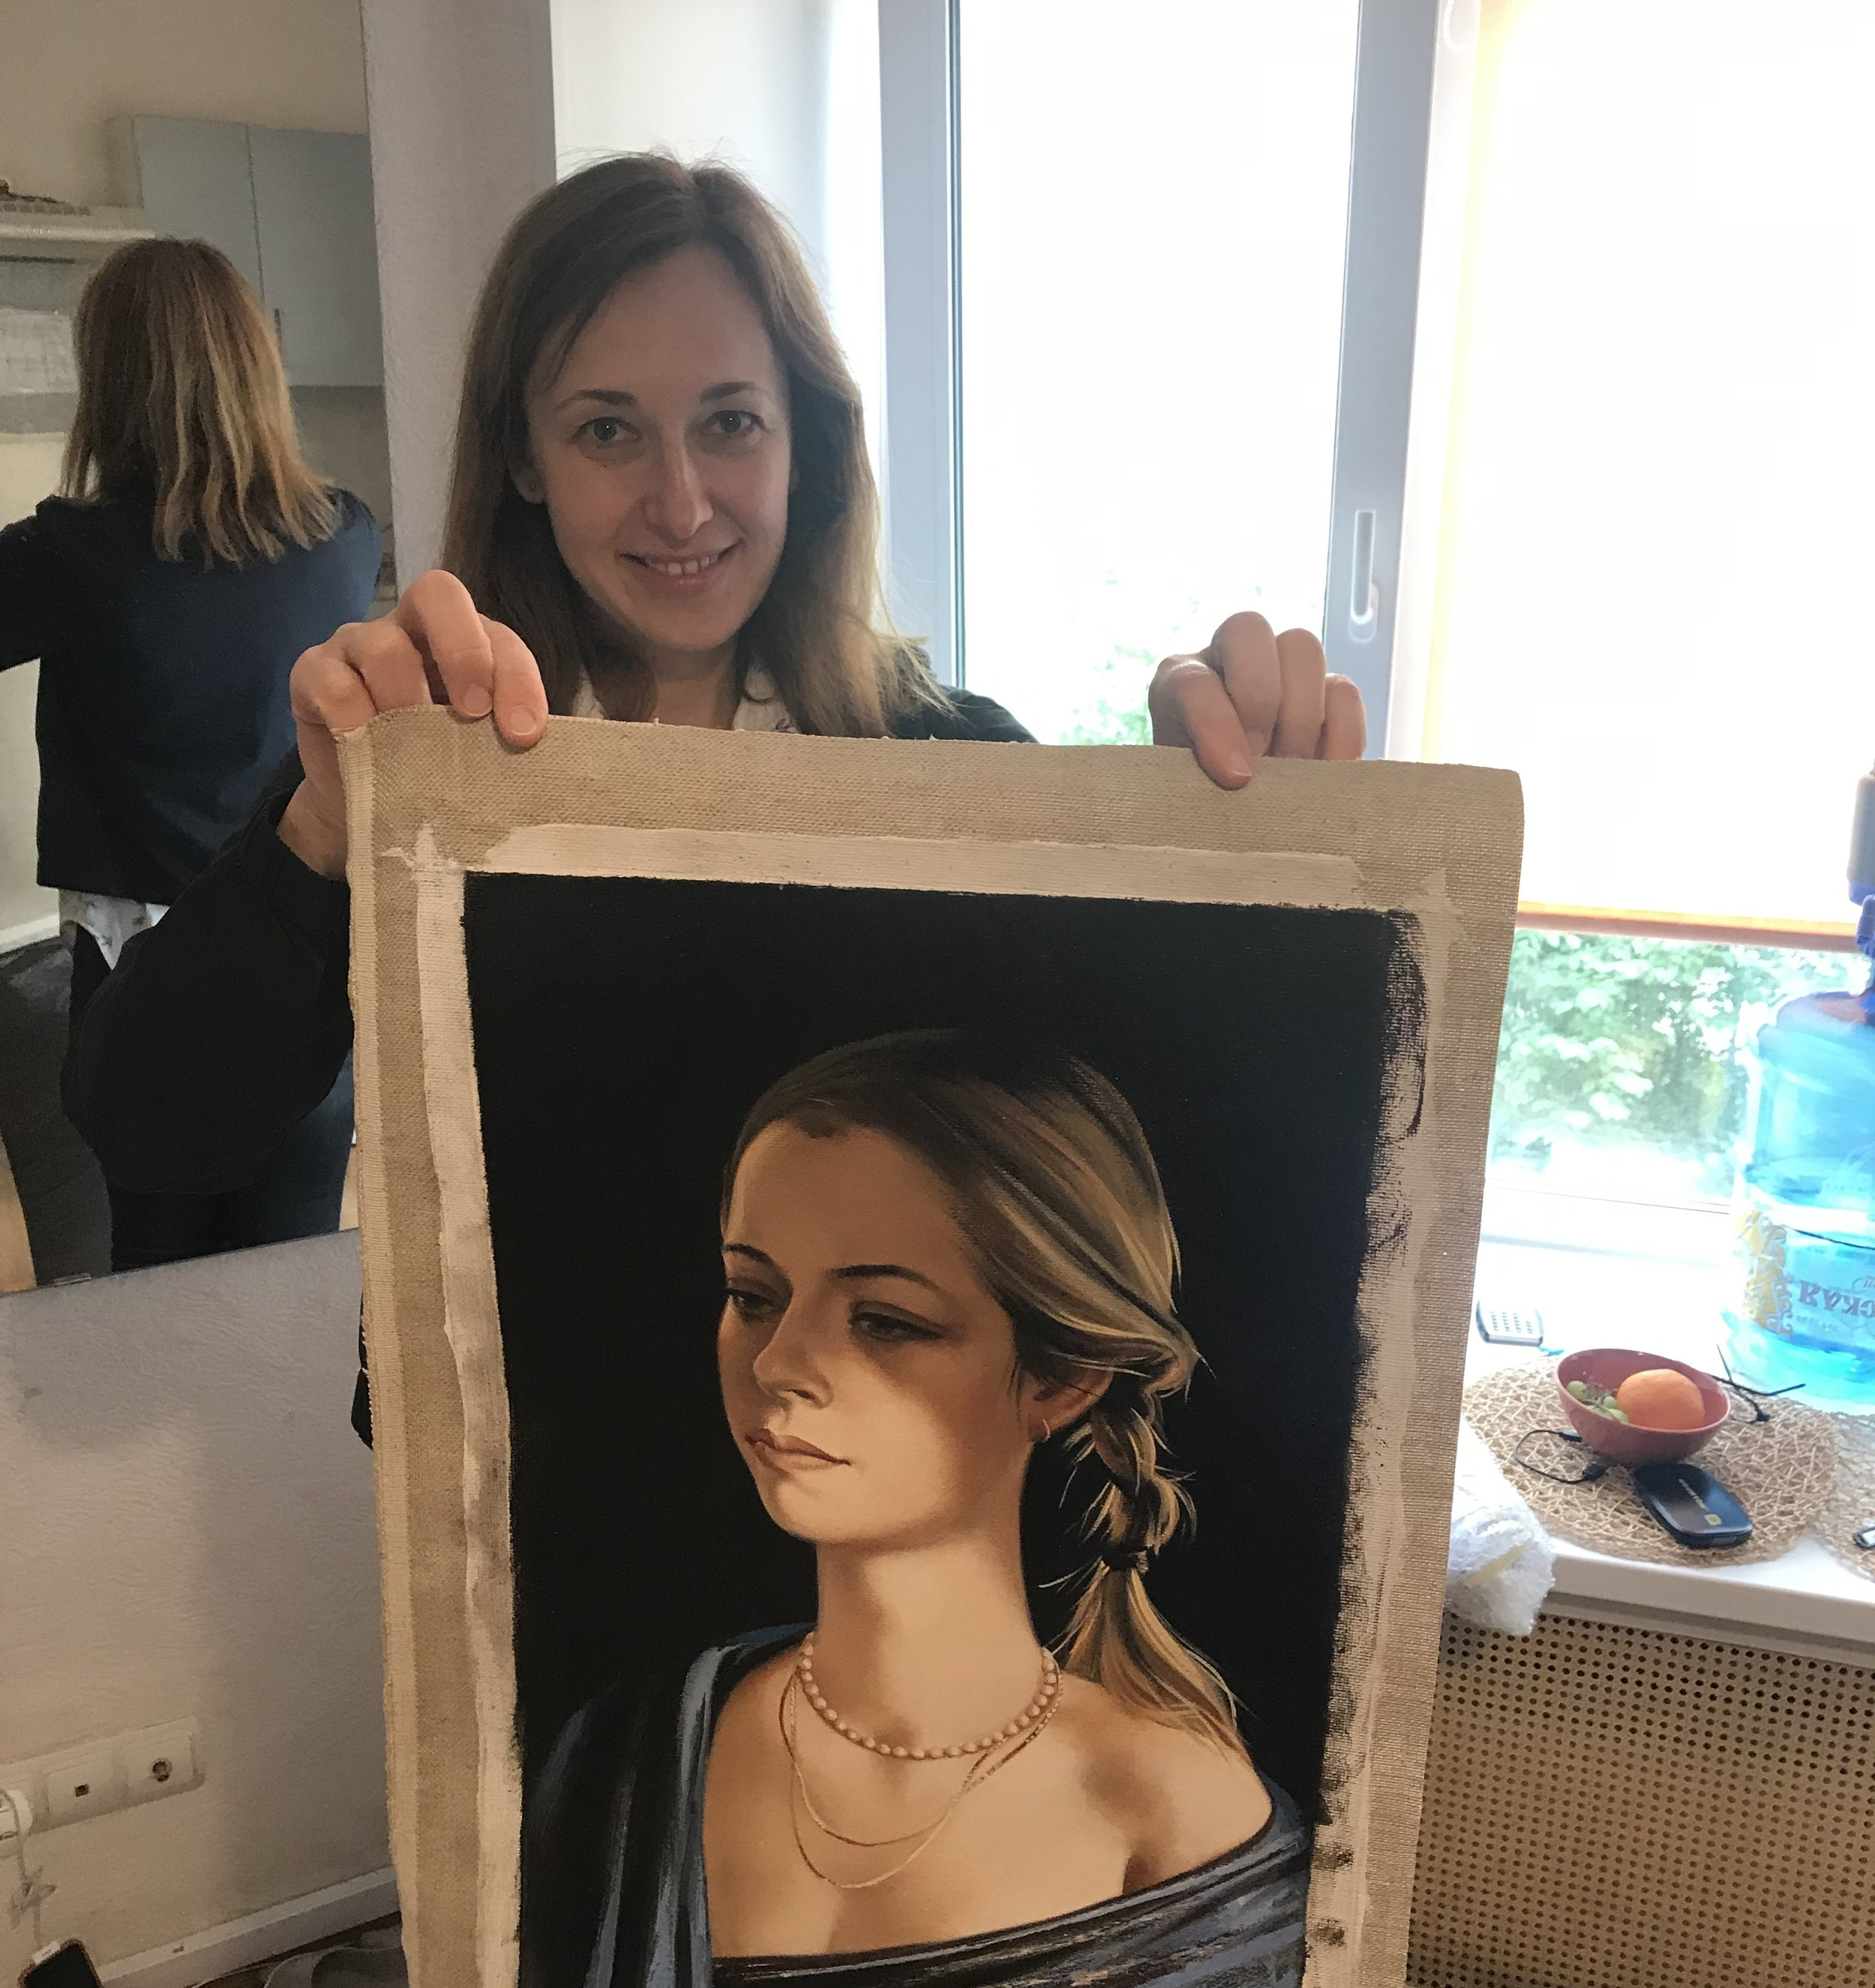 Anastasia Bazanova with the painting of Lucy's daughter Libby painted by her dad Alexey Bazanov